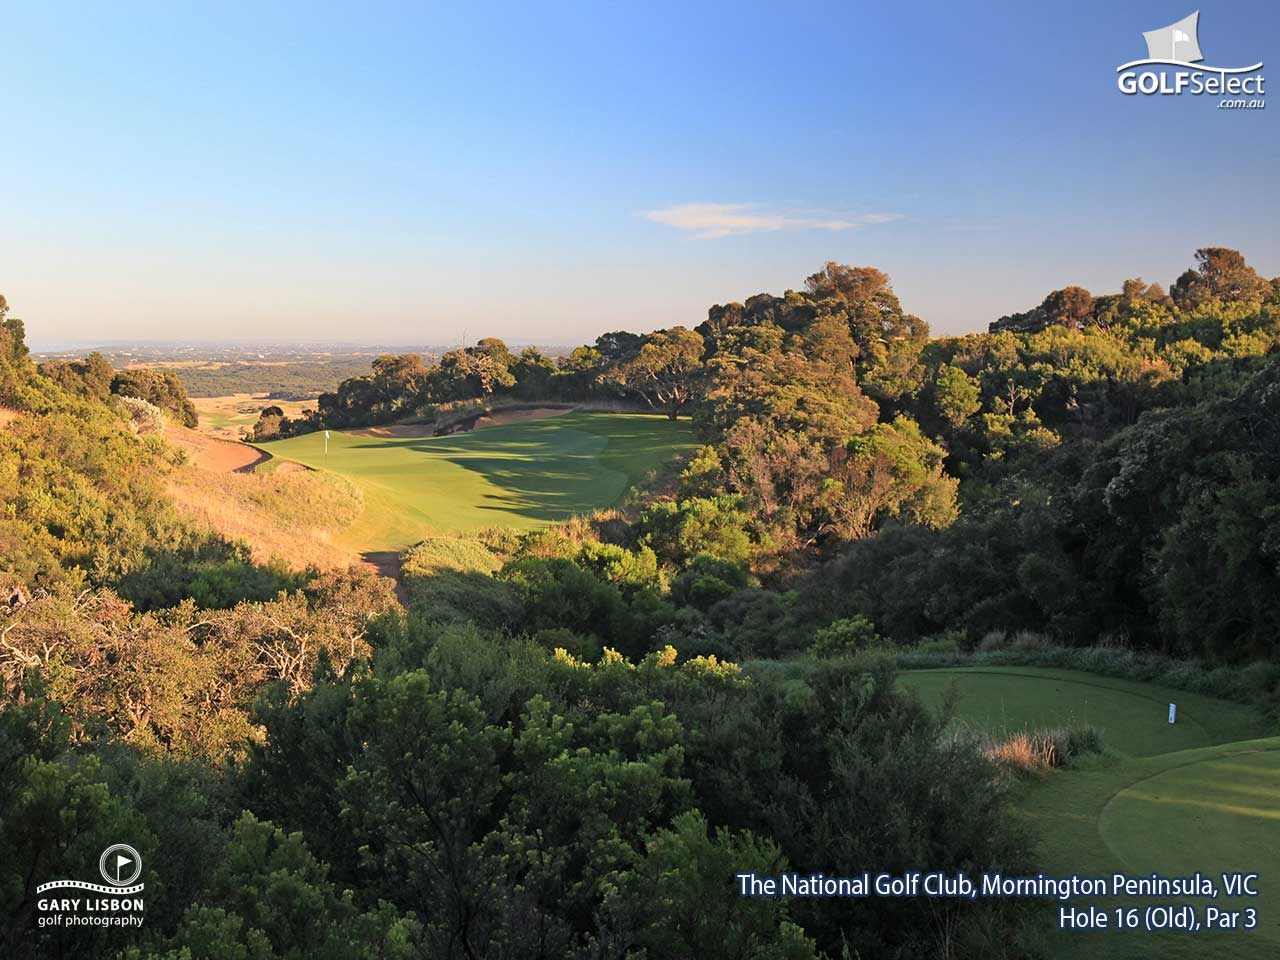 The National Golf Club (Old Course) Hole 16, Par 3